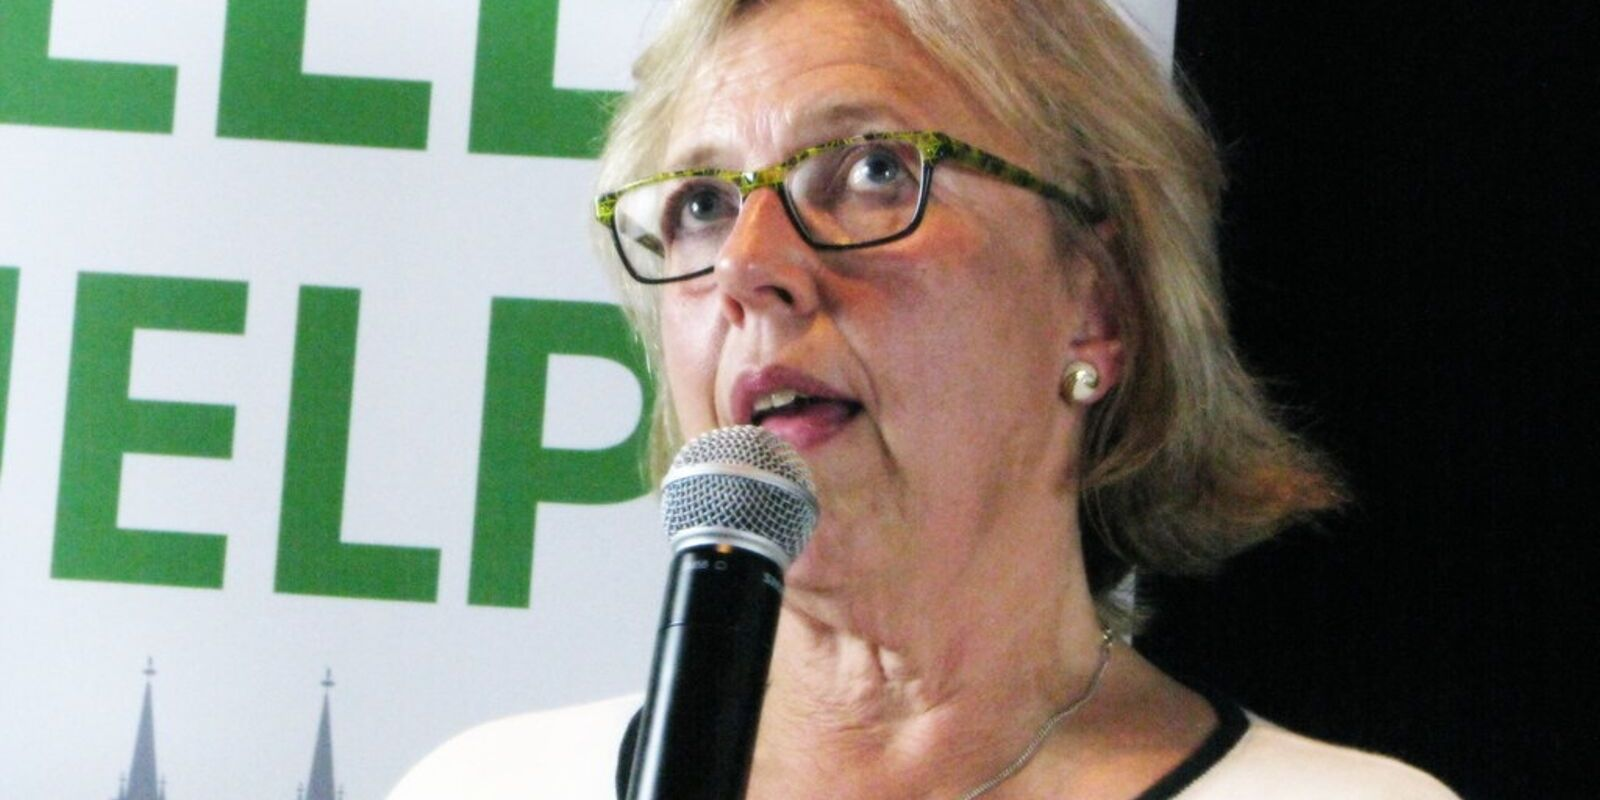 PBO policy costing highlights uncertainty in novel Green Party spending promises